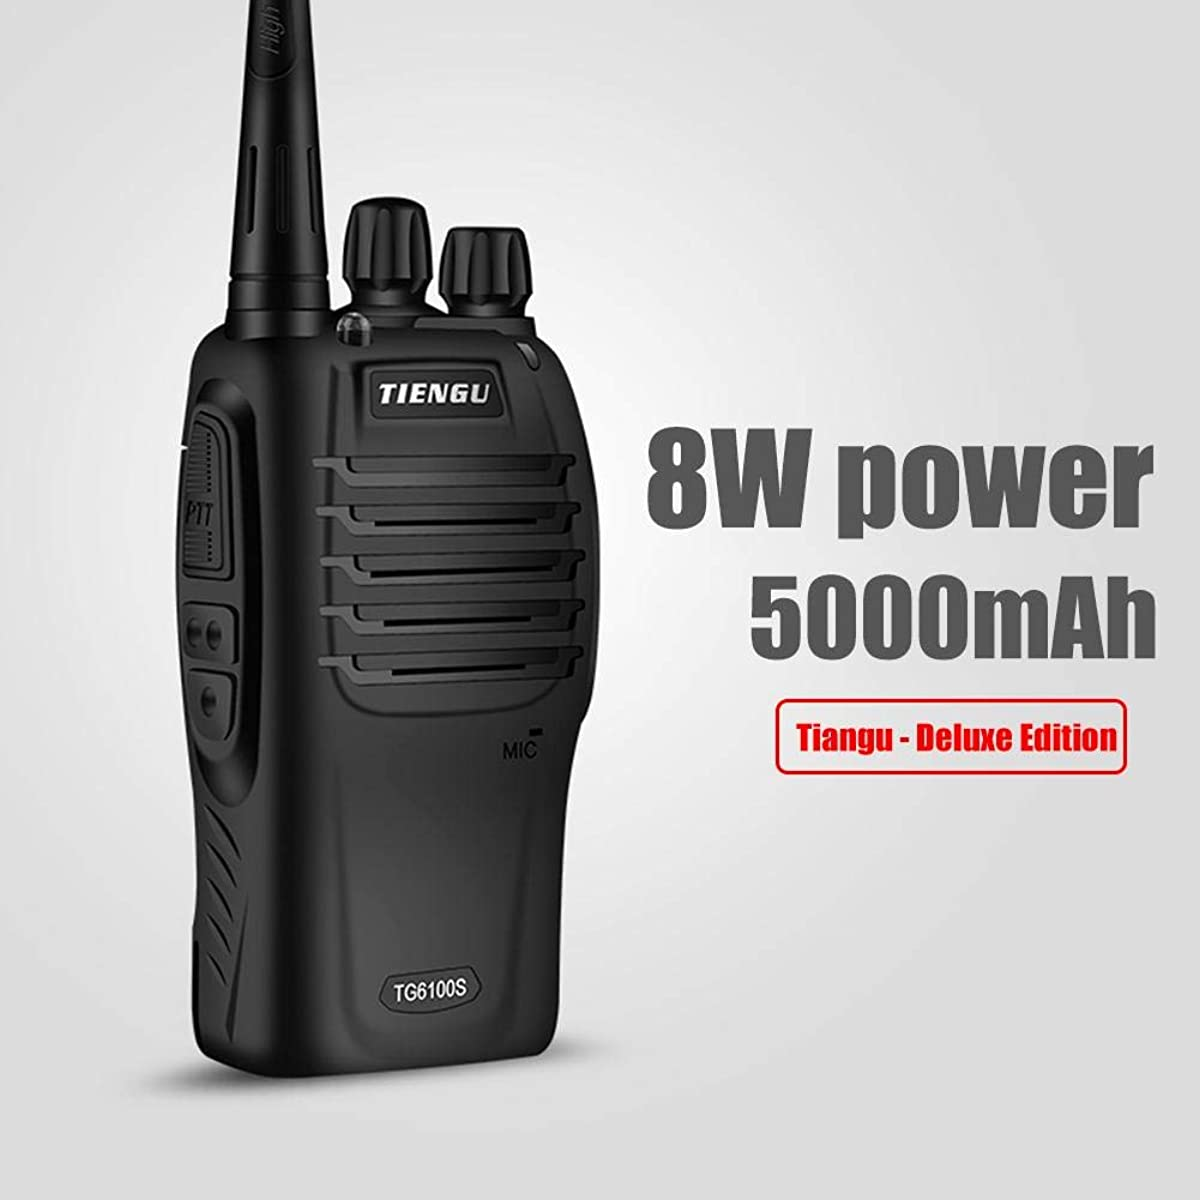 TOMOYOU Mini Walkie Talkie Civilian Walkie Talkie Professional Radio Rechargeable CTCSS for TIENGU TG600S Camping Hiking Playing Outdoor Game (Black)